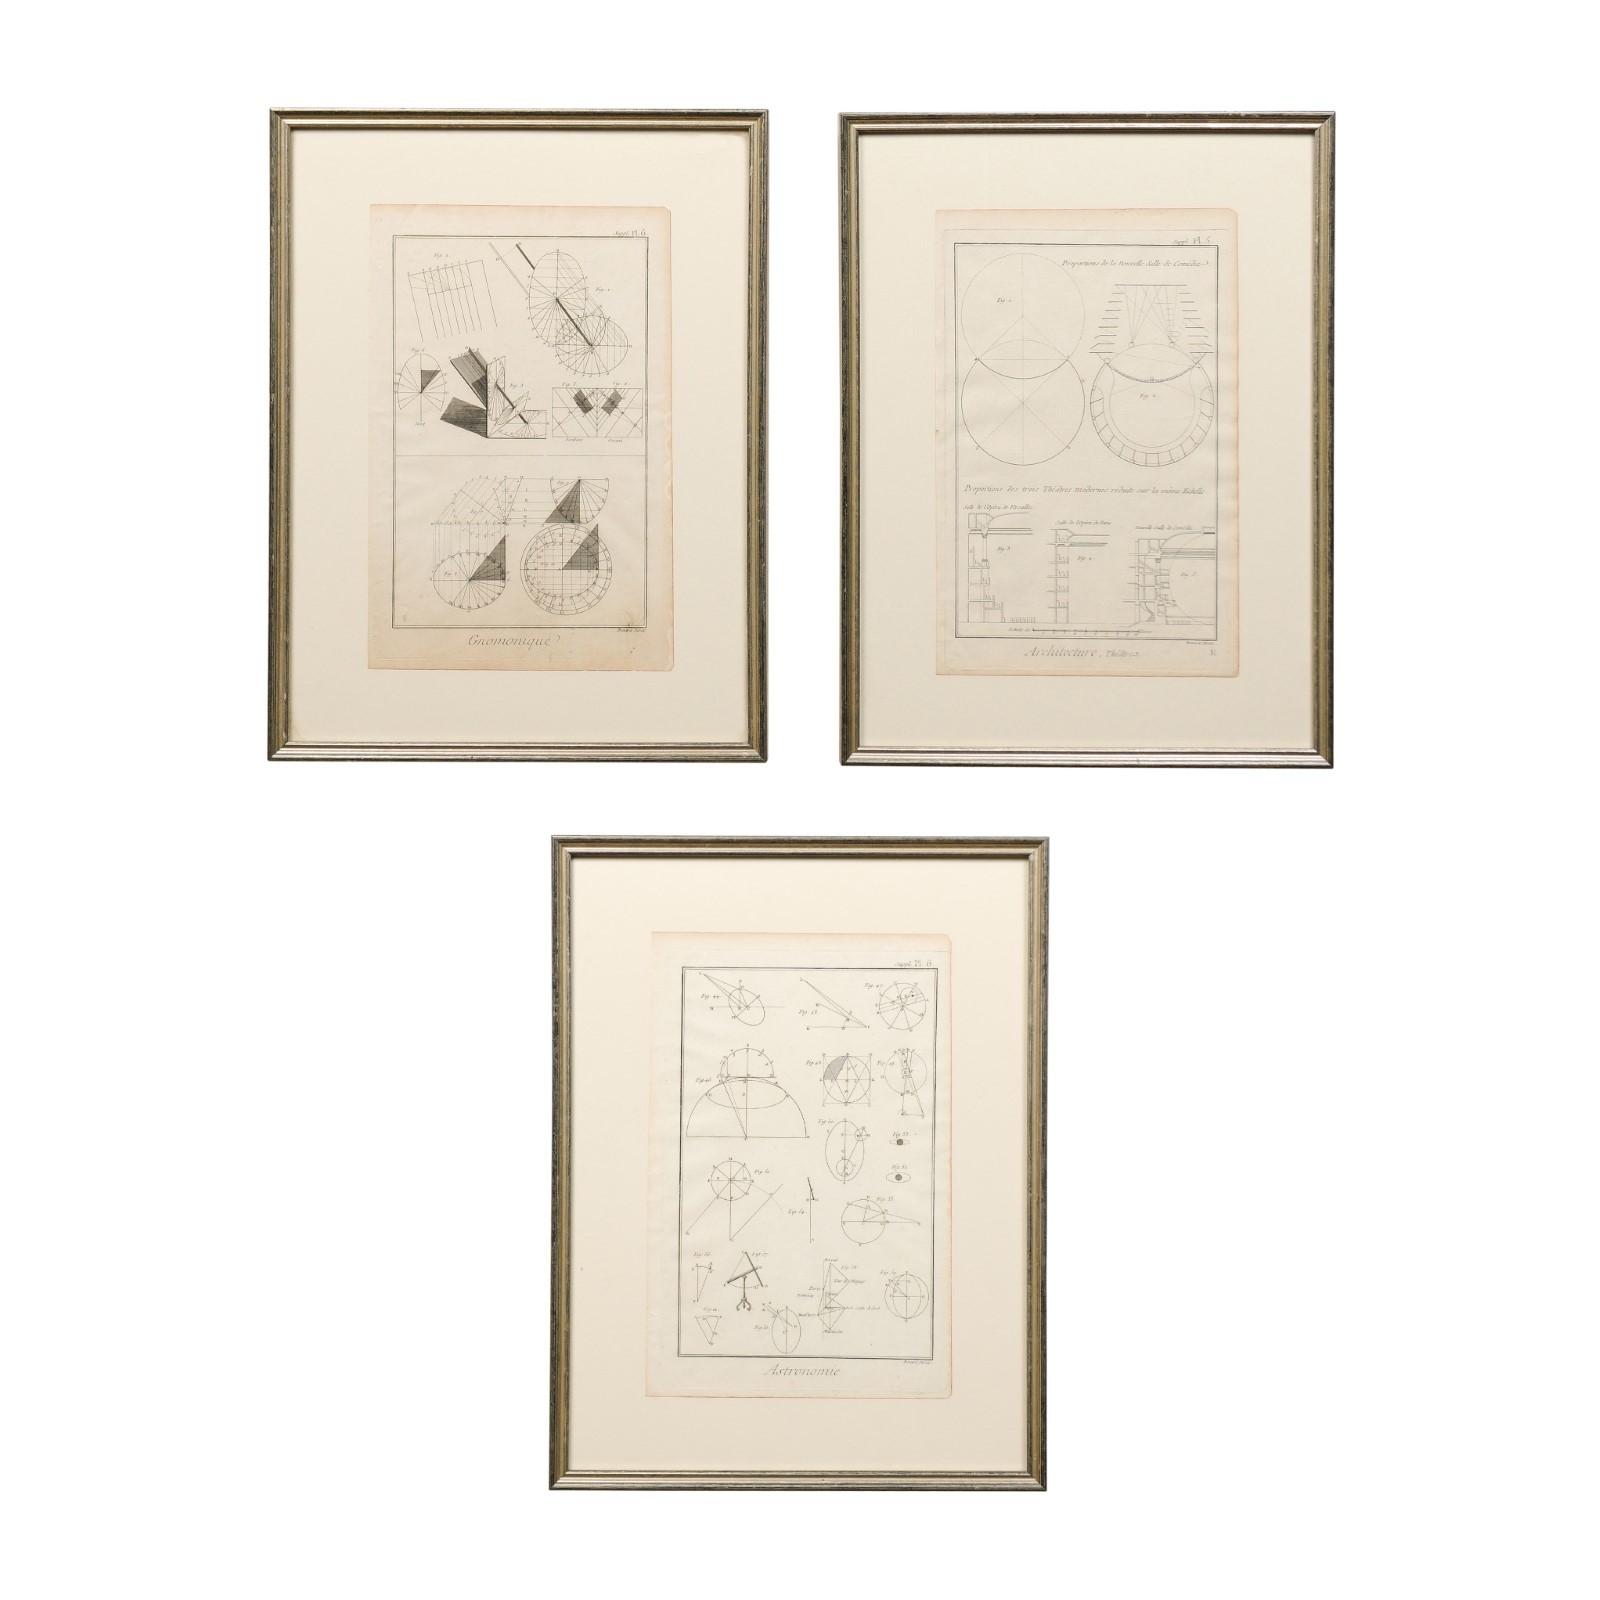 Collection of Framed 18th C. Renderings